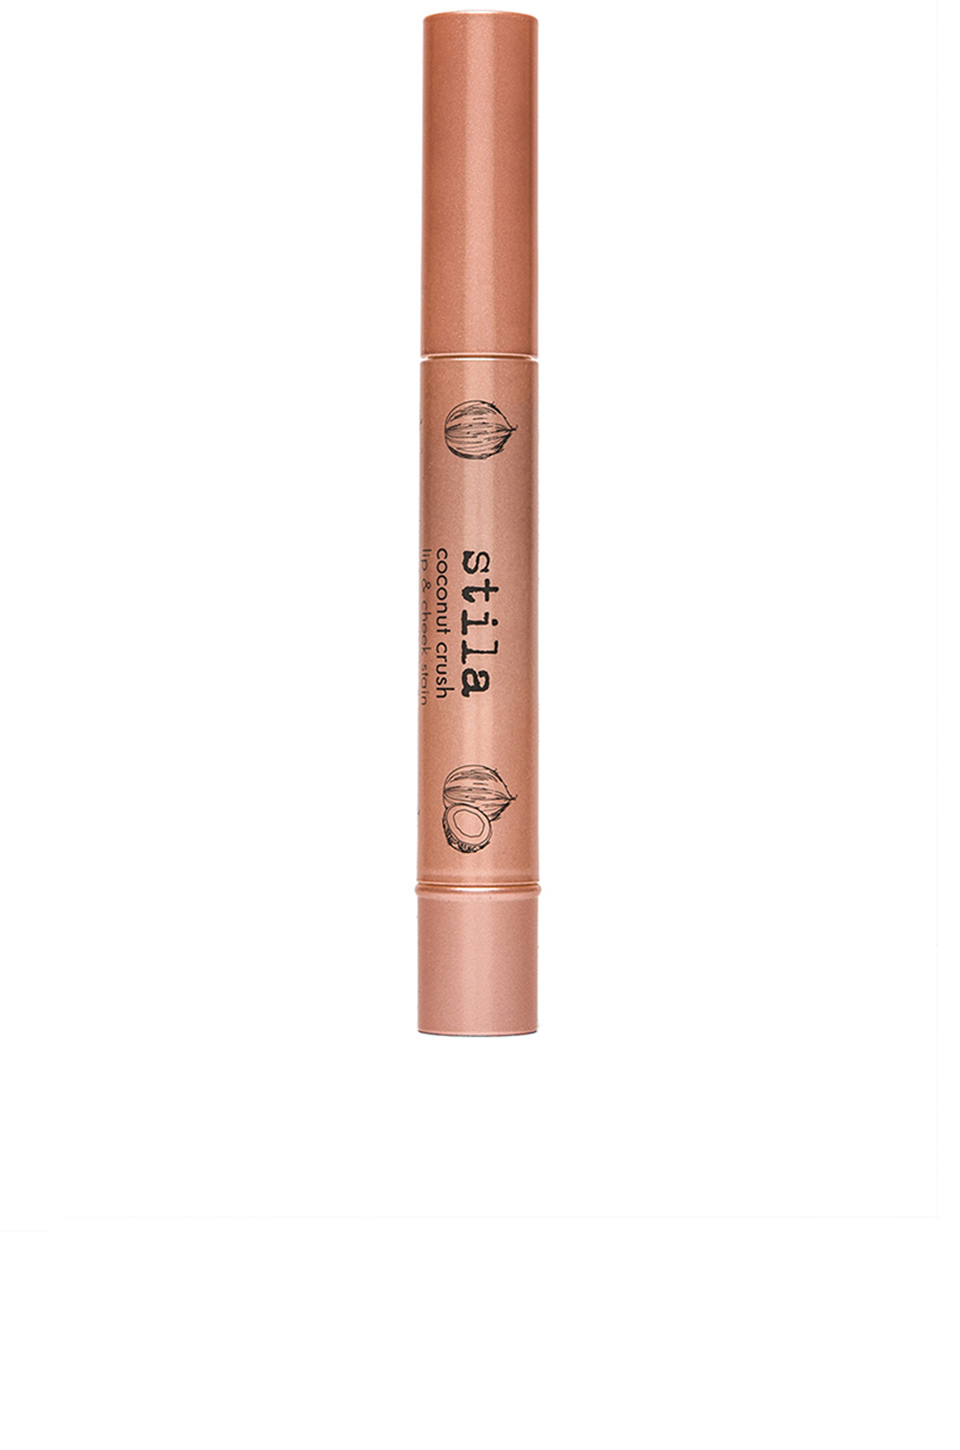 Stila Coconut Crush Lip & Cheek Stain